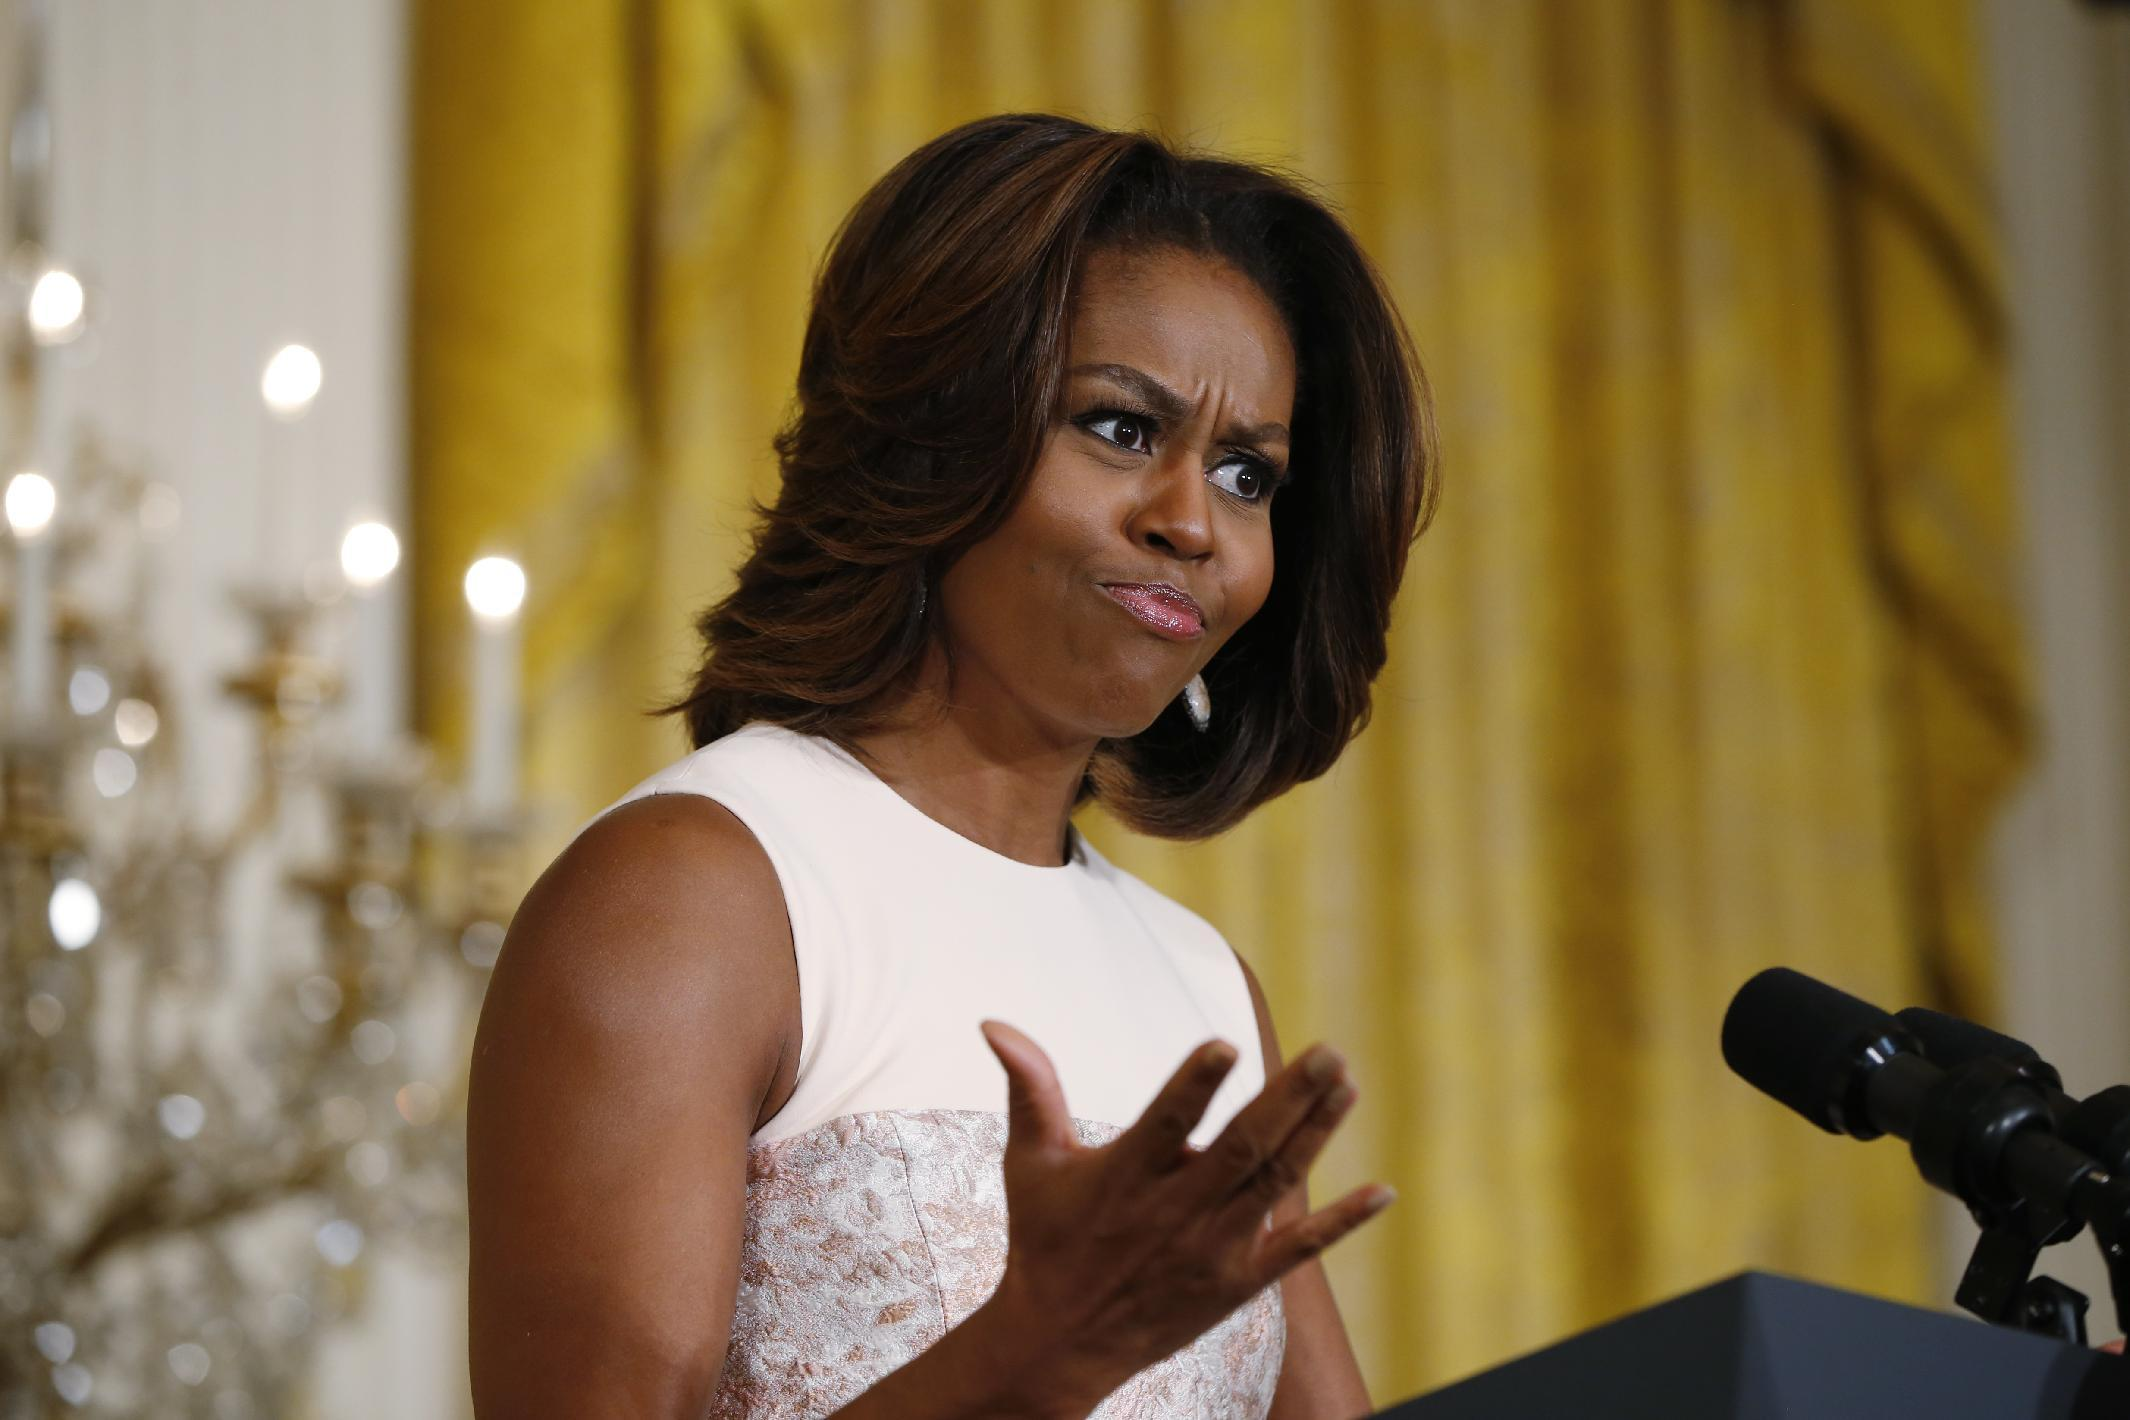 Michelle Obama Honored By Portrait Installation